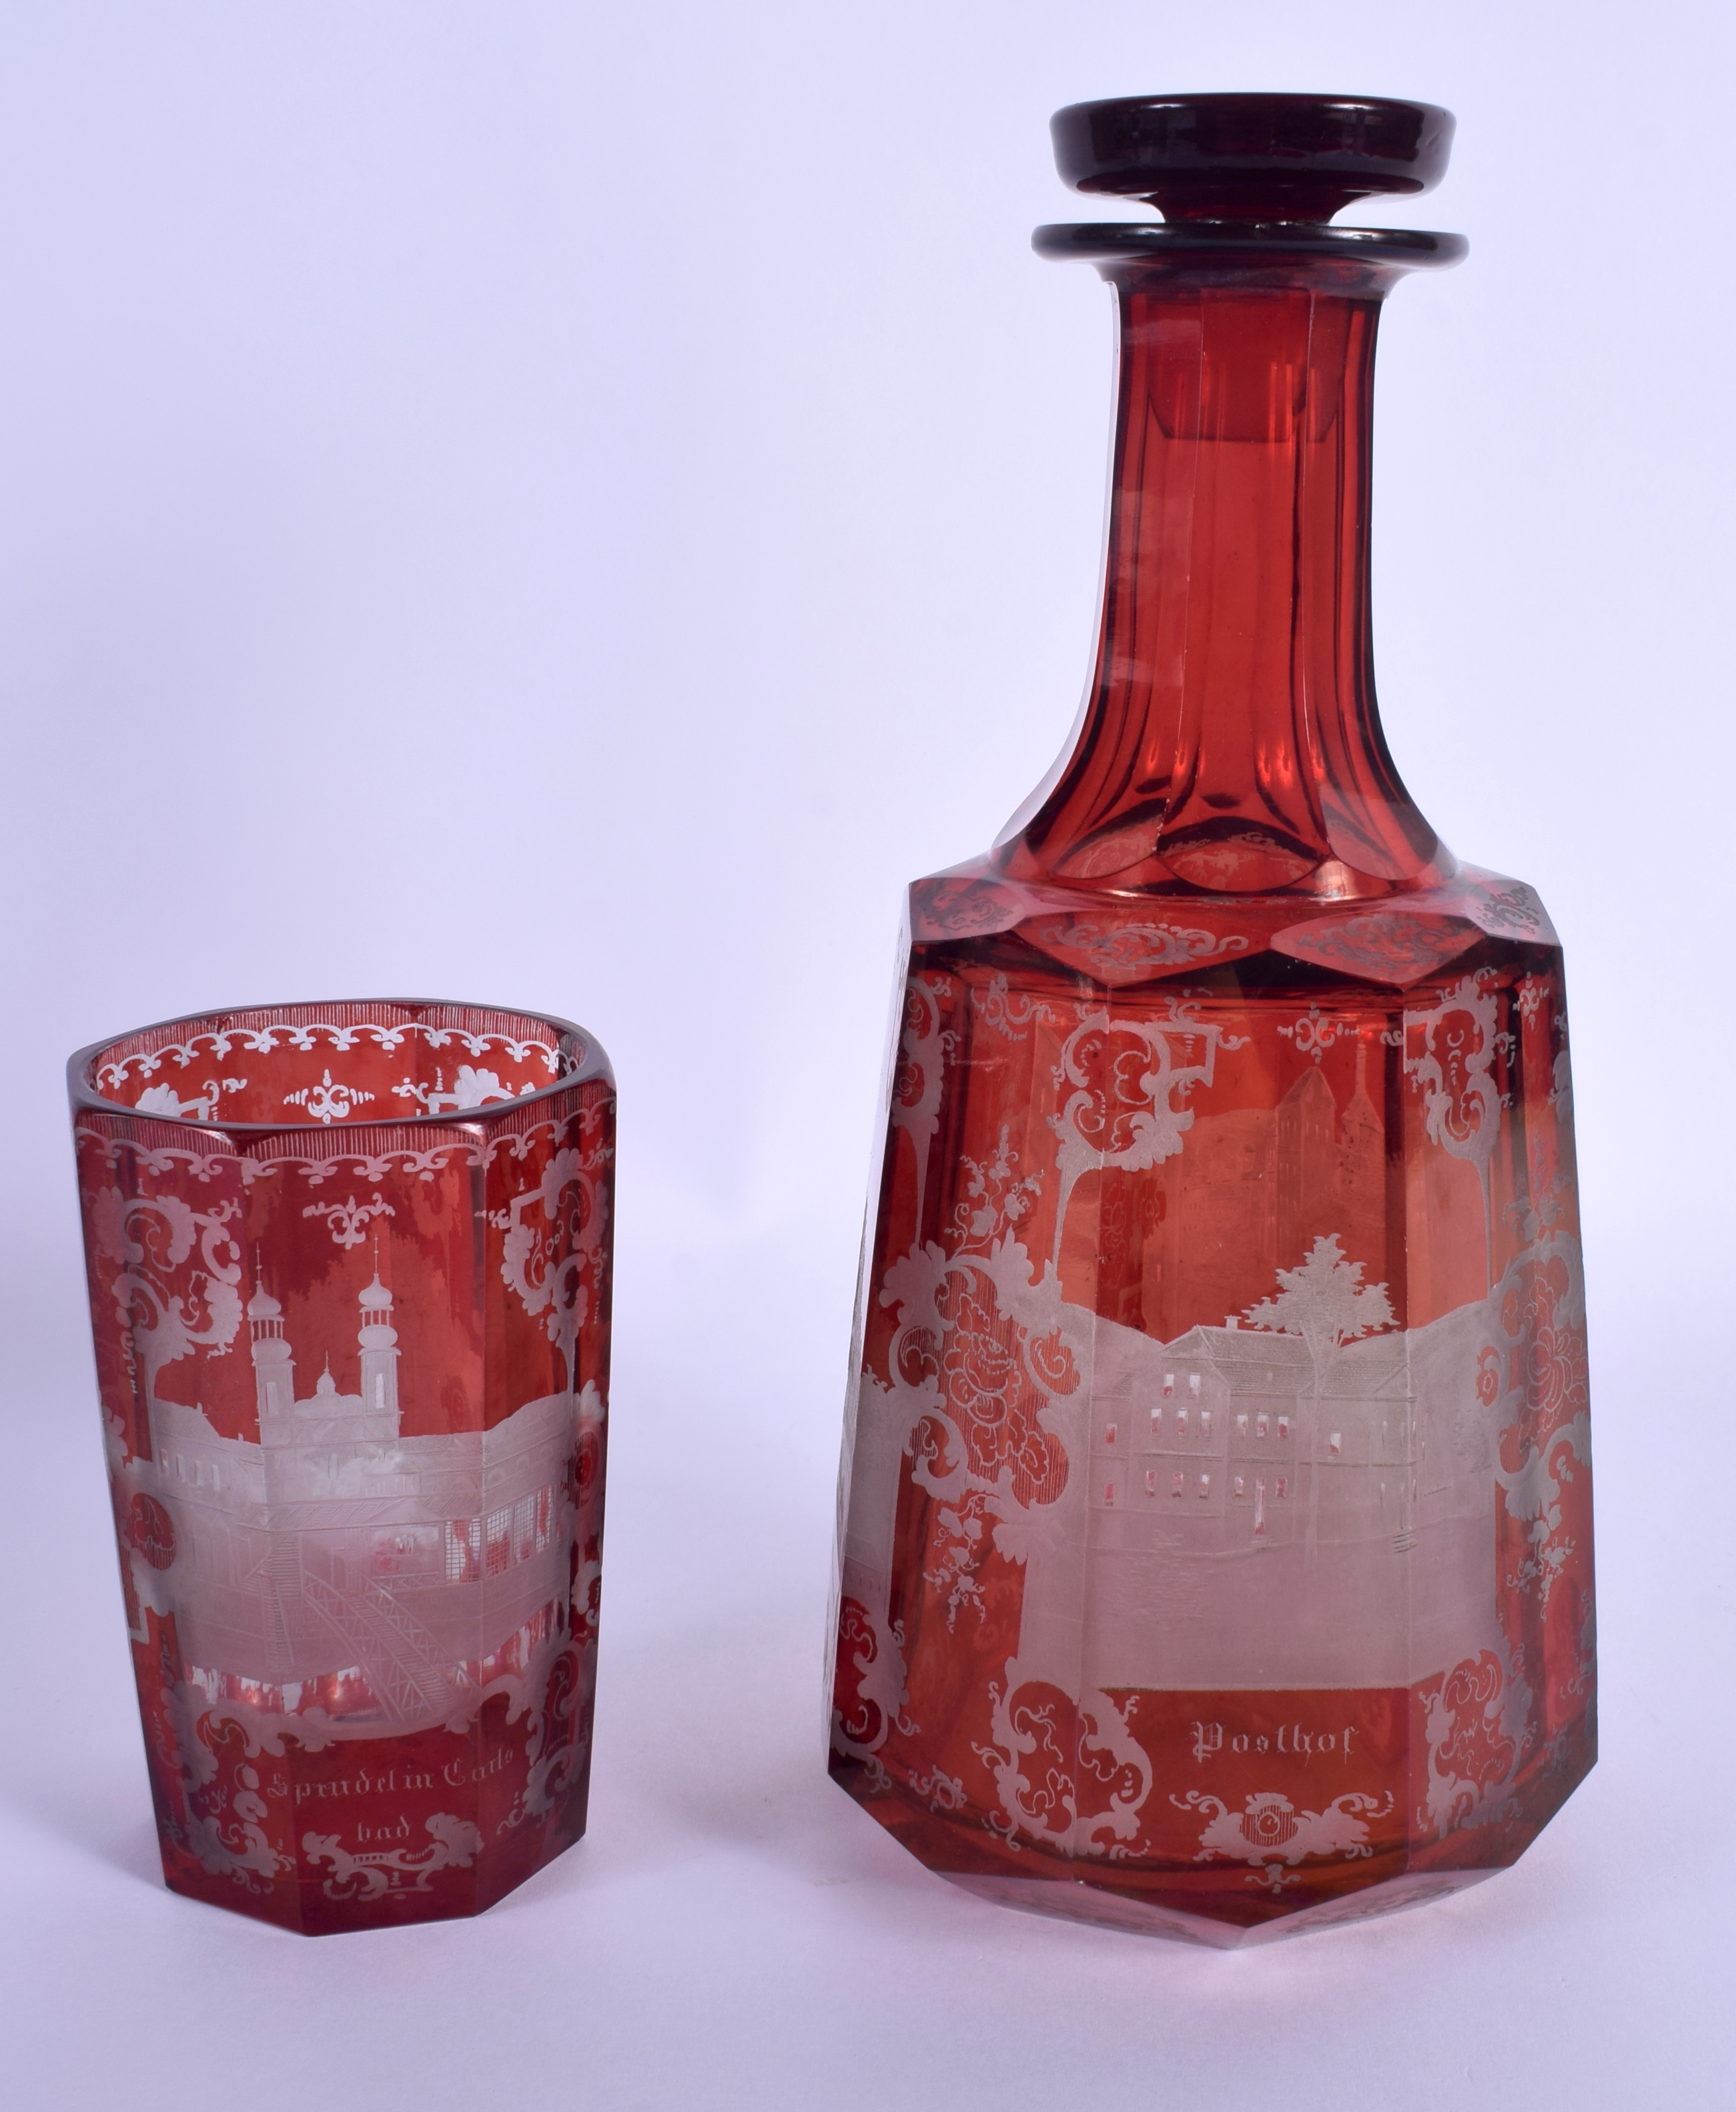 A 19TH CENTURY BOHEMIAN RUBY GLASS DECANTER AND STOPPER together with a similar beaker. 24 cm high. - Image 2 of 3